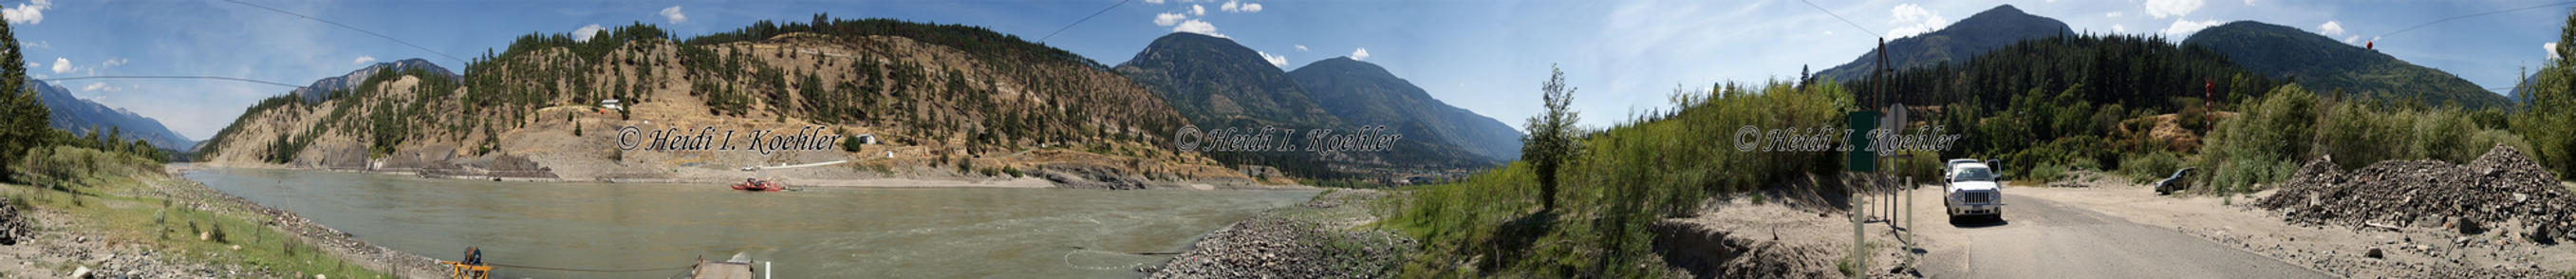 -2014-08-09s2-391-Lytton-Ferry-360-pano-small by 12monthsOFwinter